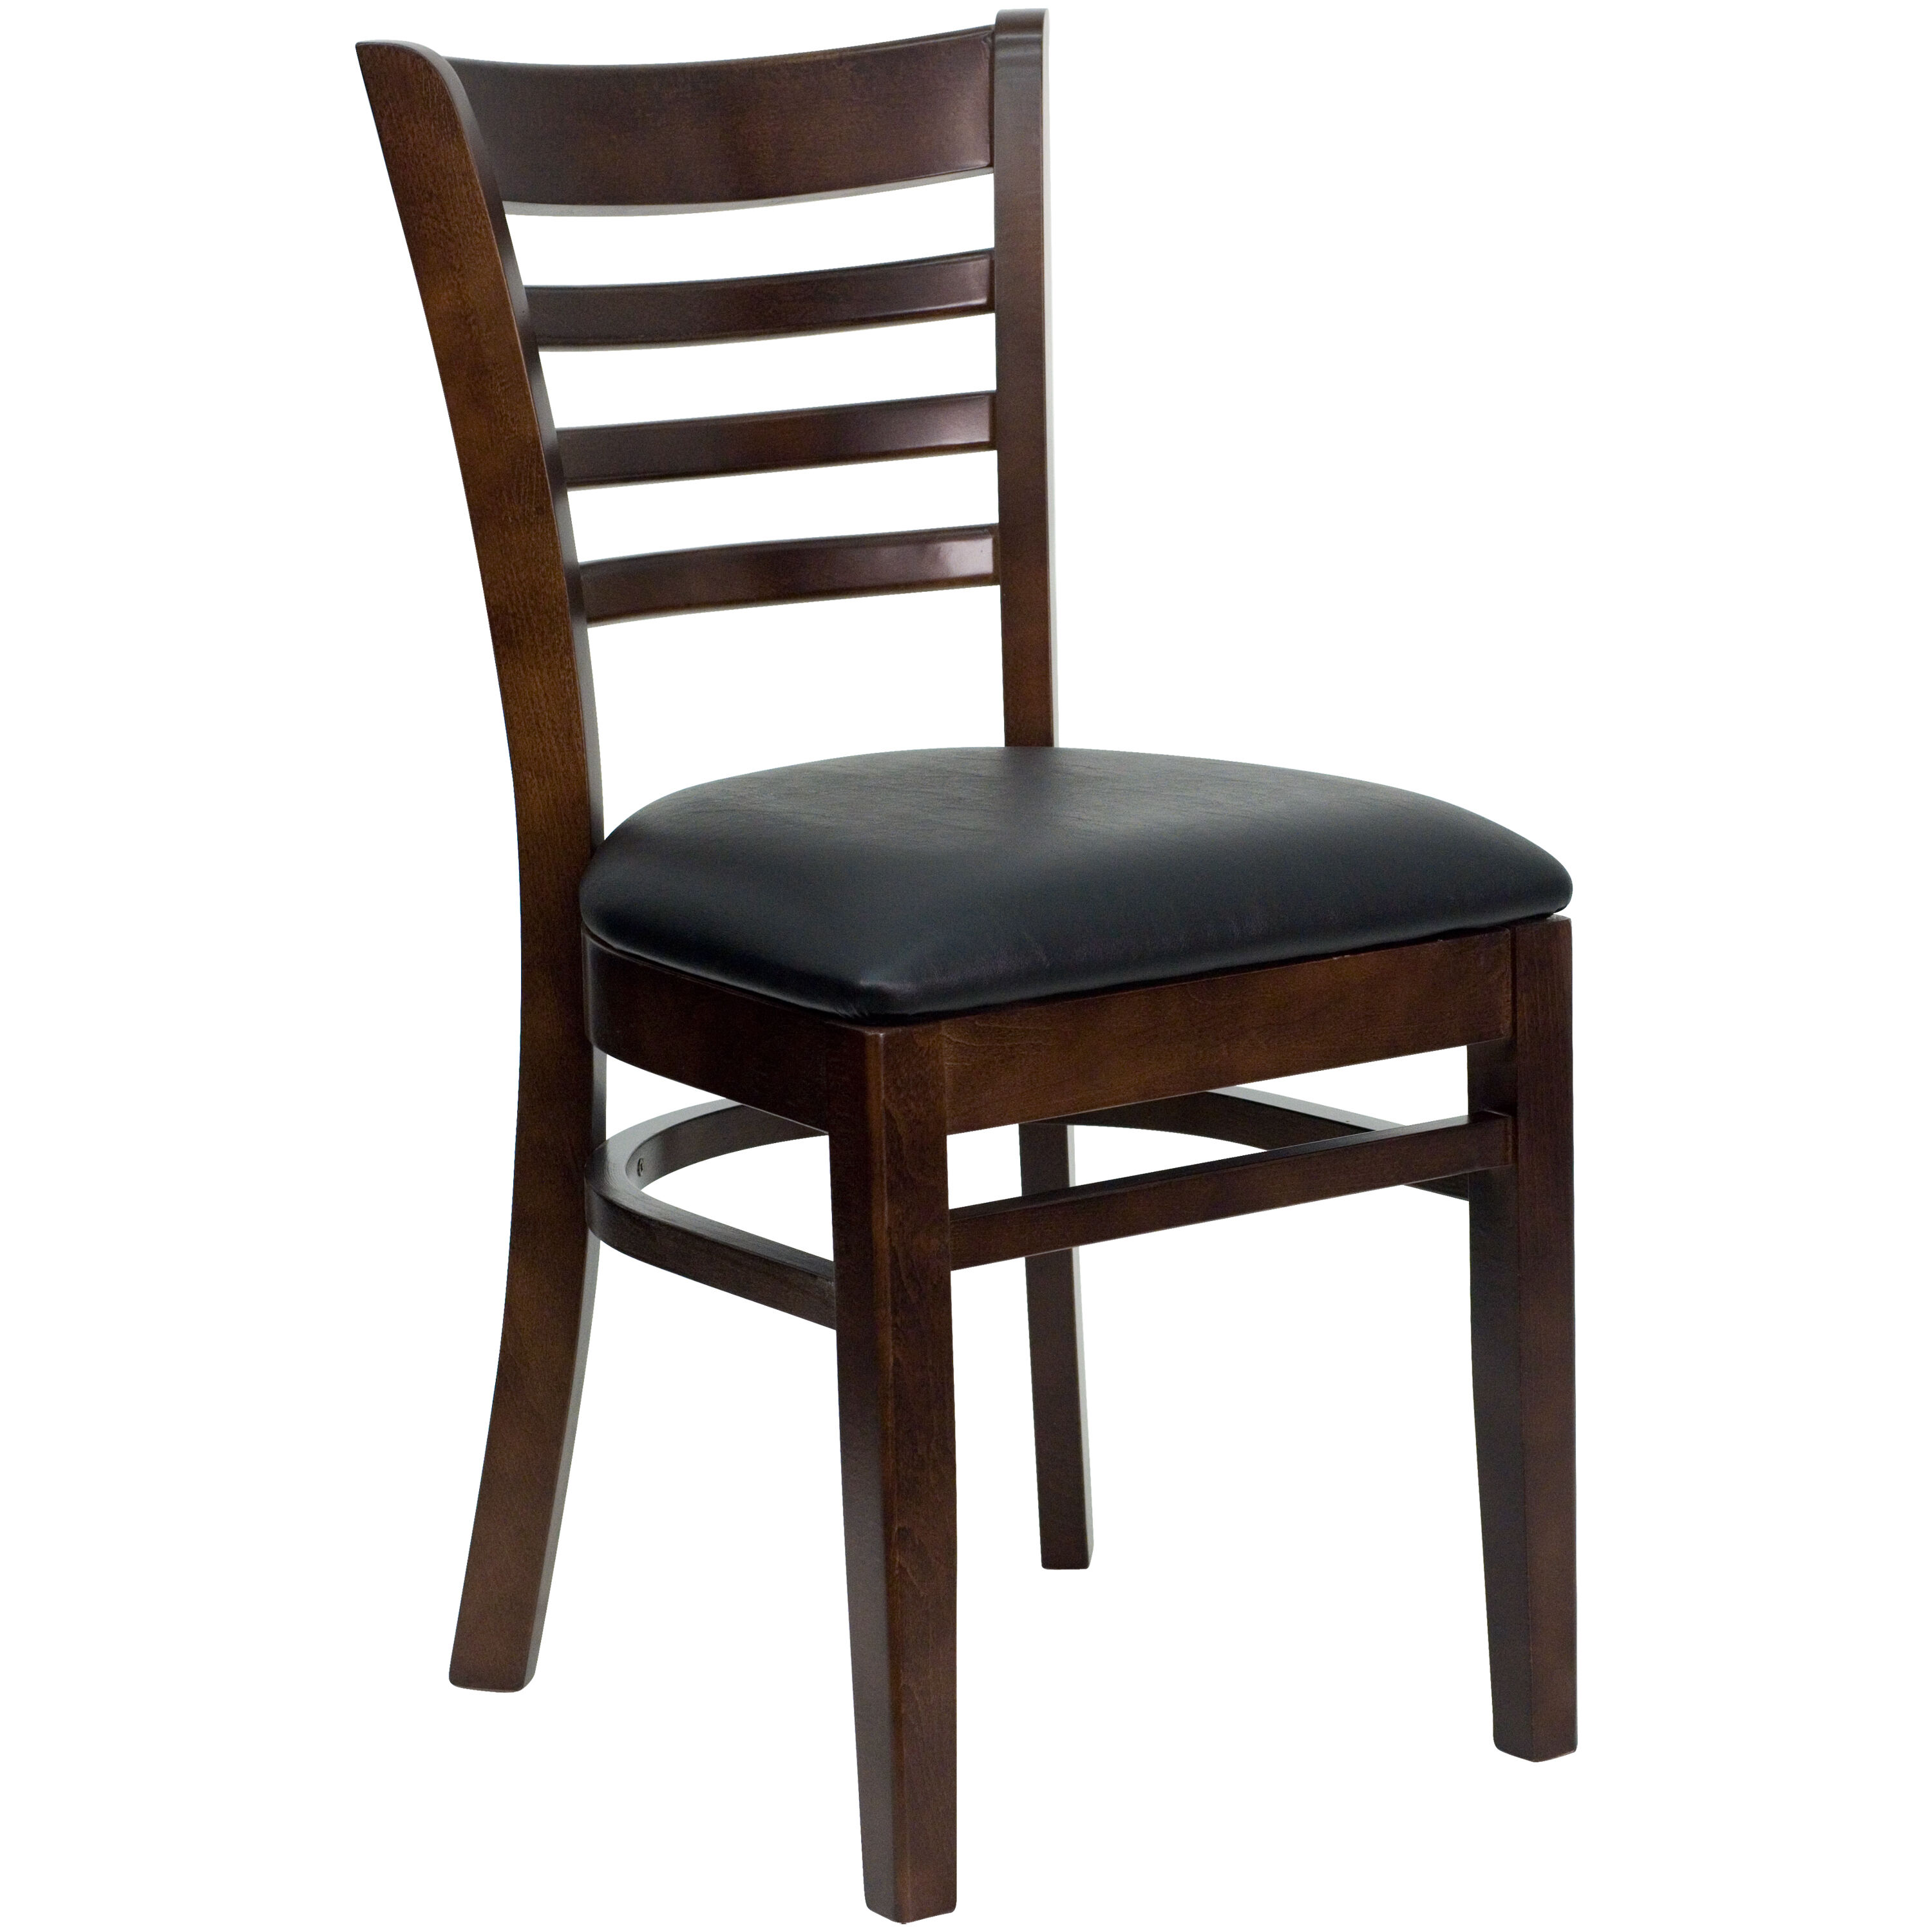 wooden restaurant chairs with arms unfinished restaurantfurniture4less wood walnut finished ladder back chair black vinyl seat